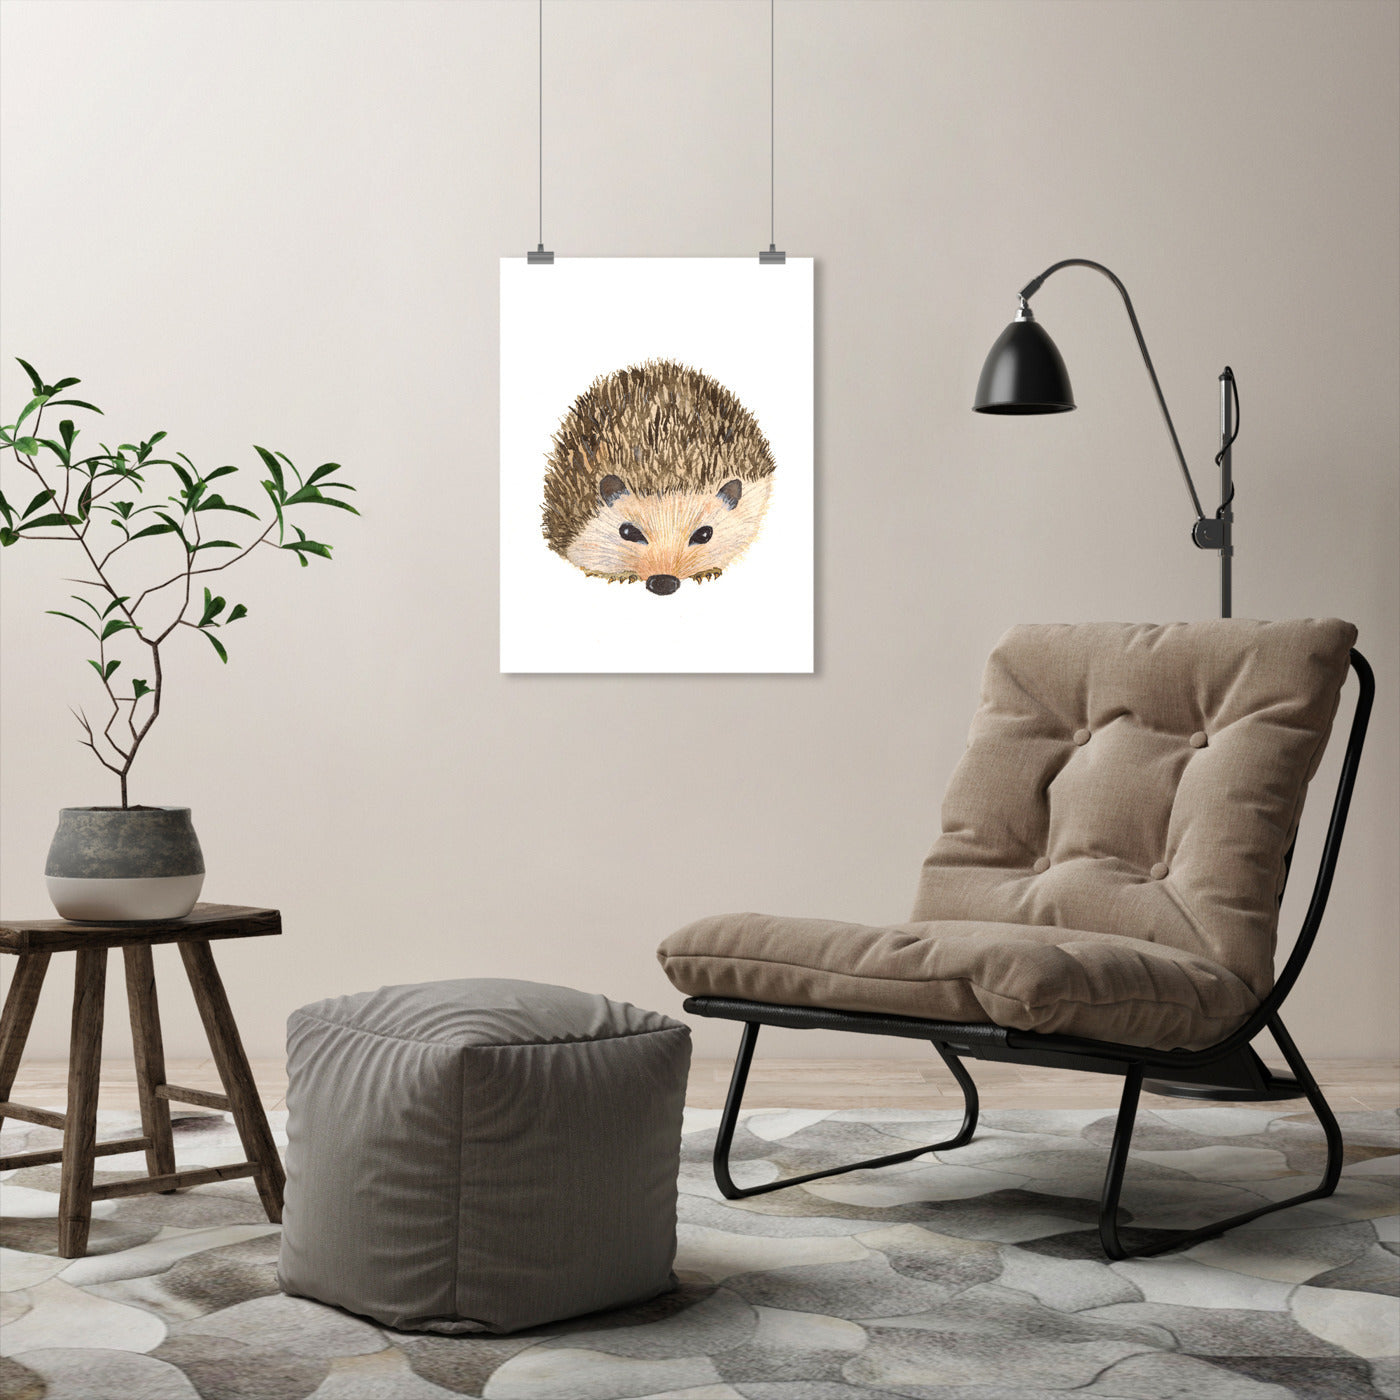 Hedgehog by Cami Monet - Art Print - Americanflat